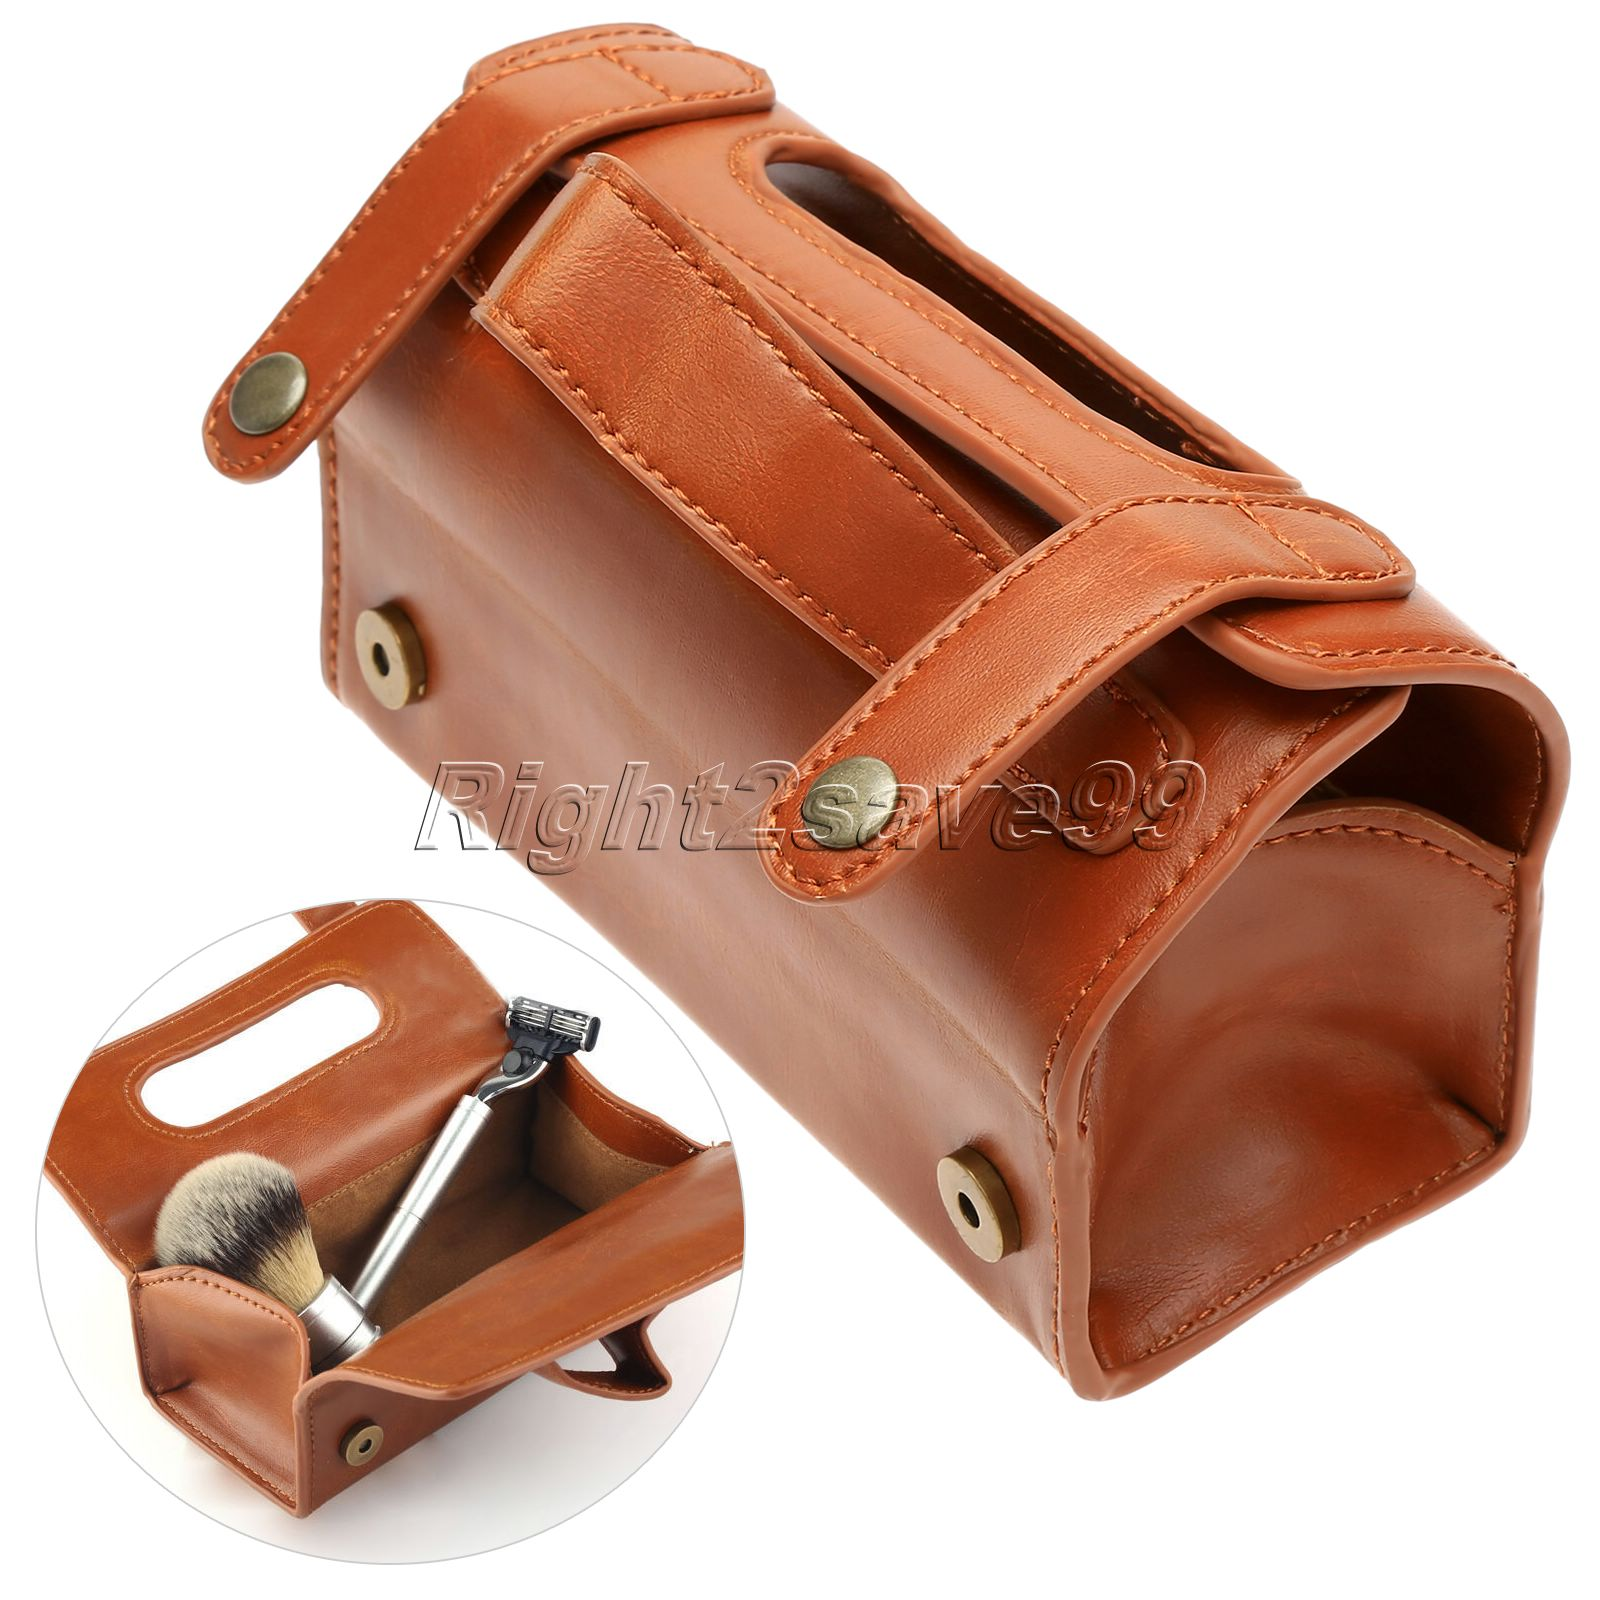 2017 New Men Pu Leather Travel Toiletry Bag Shaving Wash Case Organizer Dark Brown For Protect Shaver Gift Container In Brush From